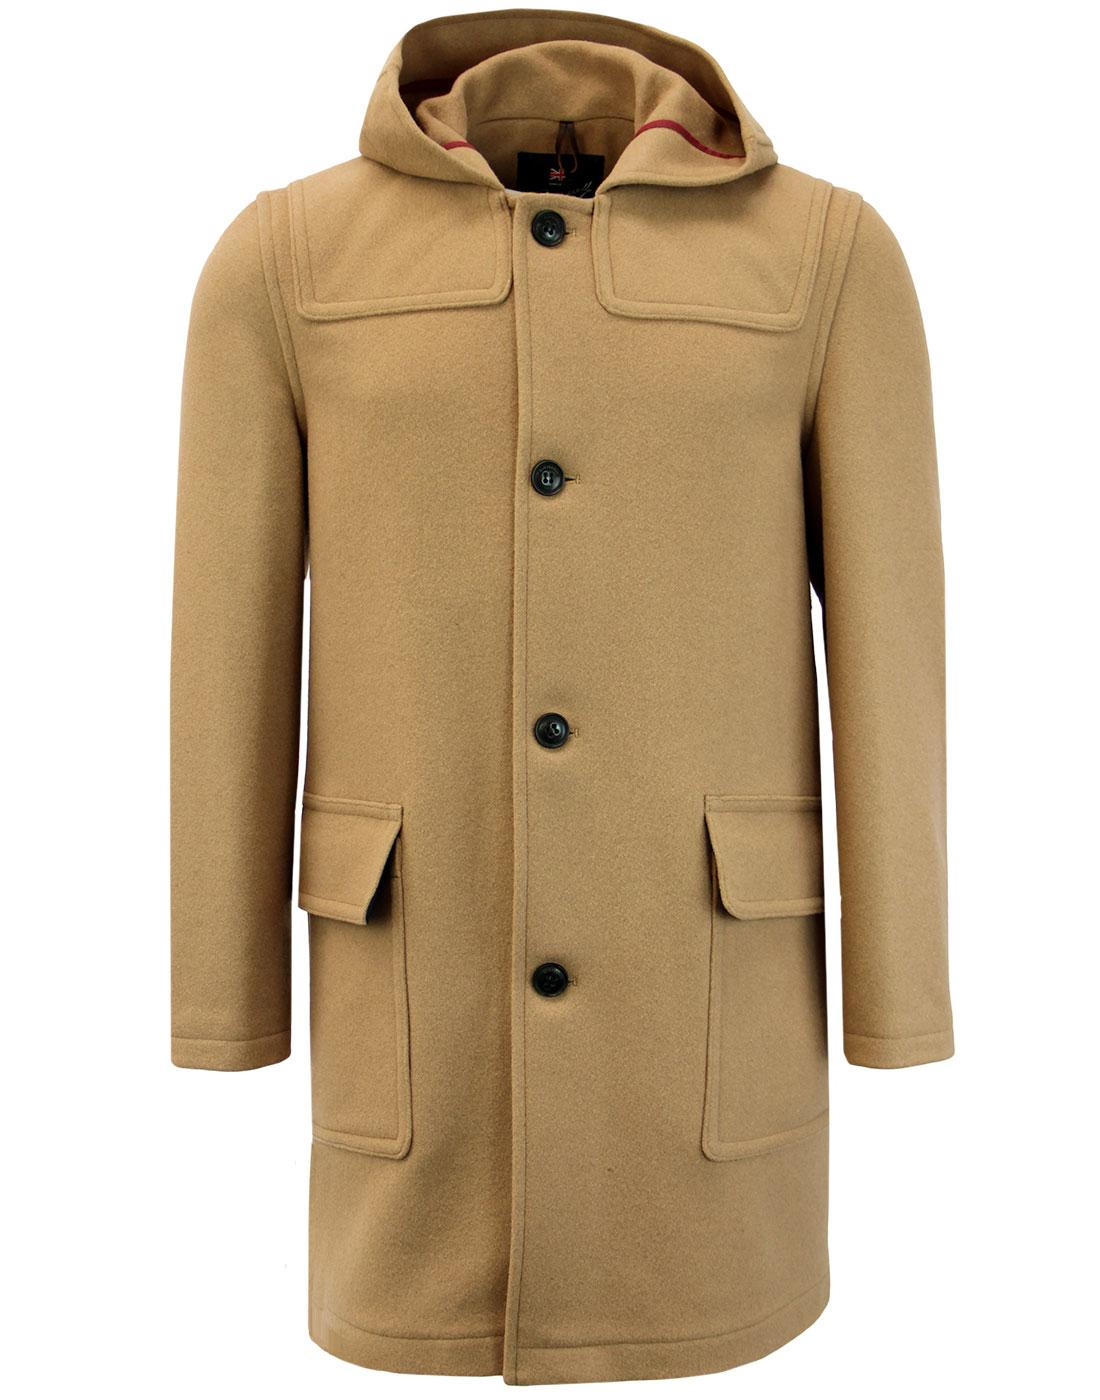 GLOVERALL Made in England Mod Button Duffle Coat